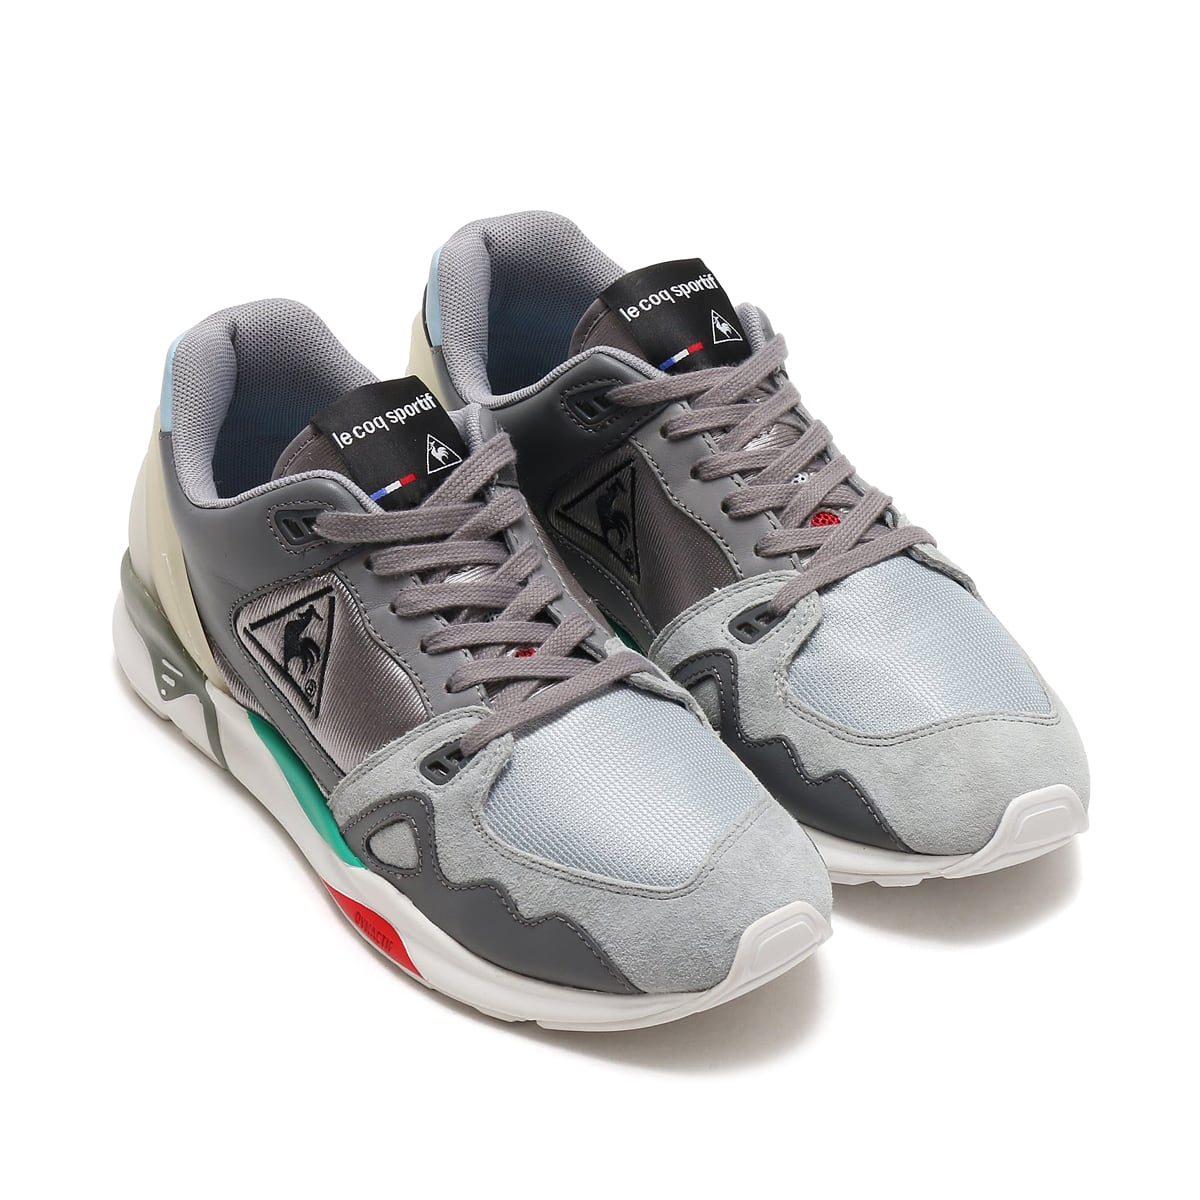 le coq sportif LCS R921  グレー_photo_large